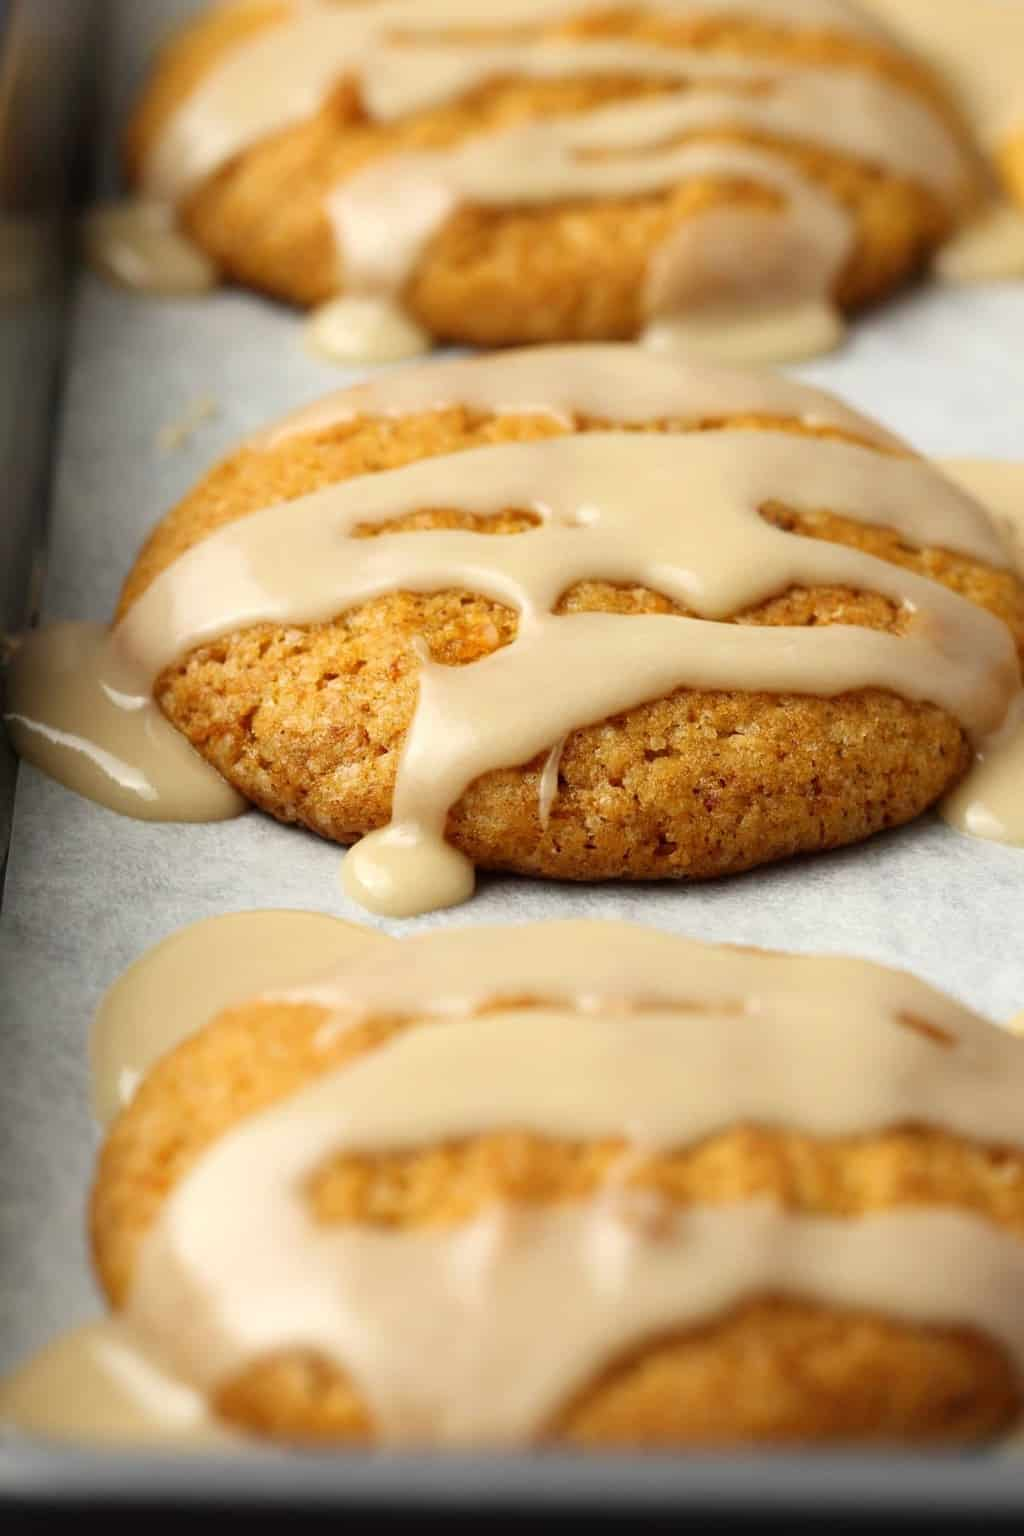 Vegan Pumpkin Cookies topped with a maple glaze on a parchment lined baking tray.